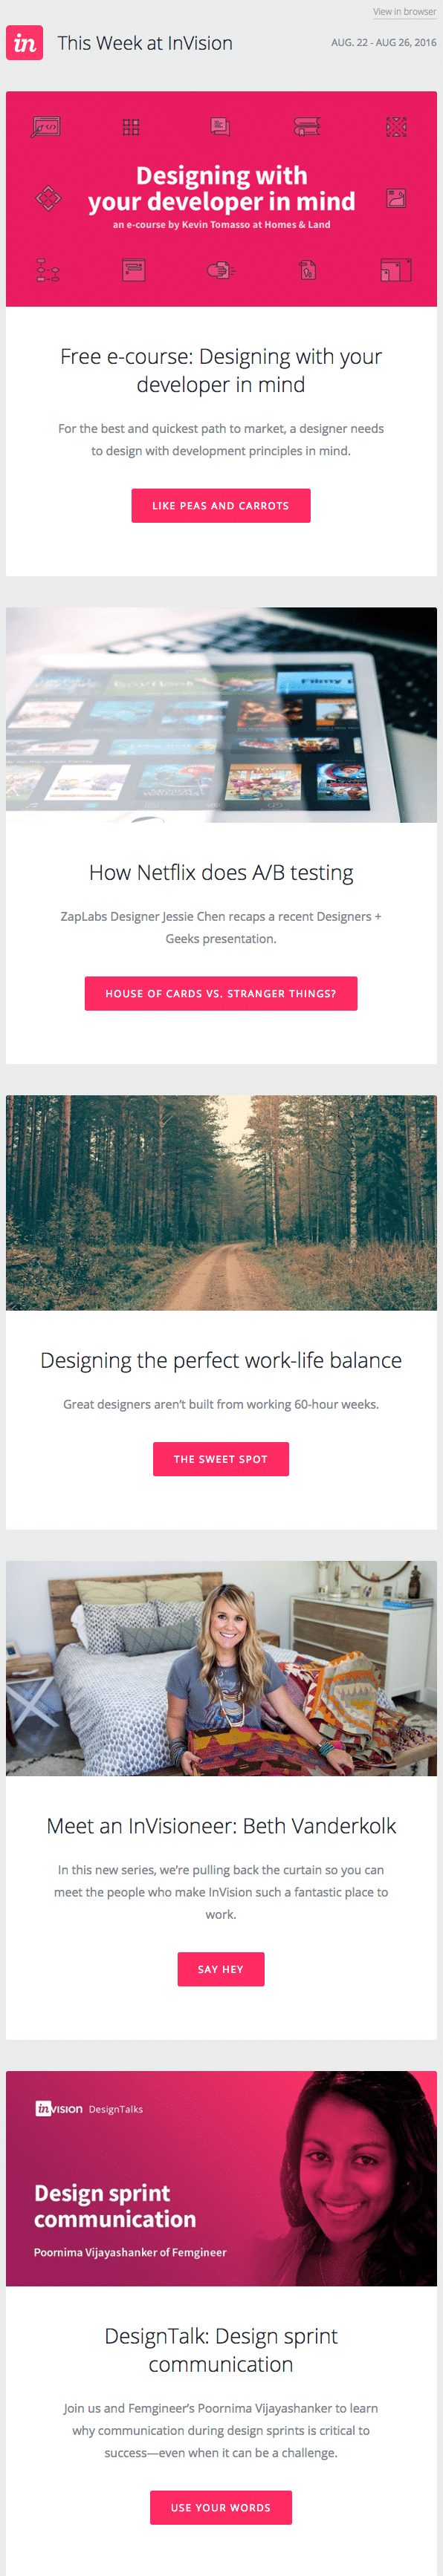 Email marketing campaign example by InVision for its weekly blog newsletter